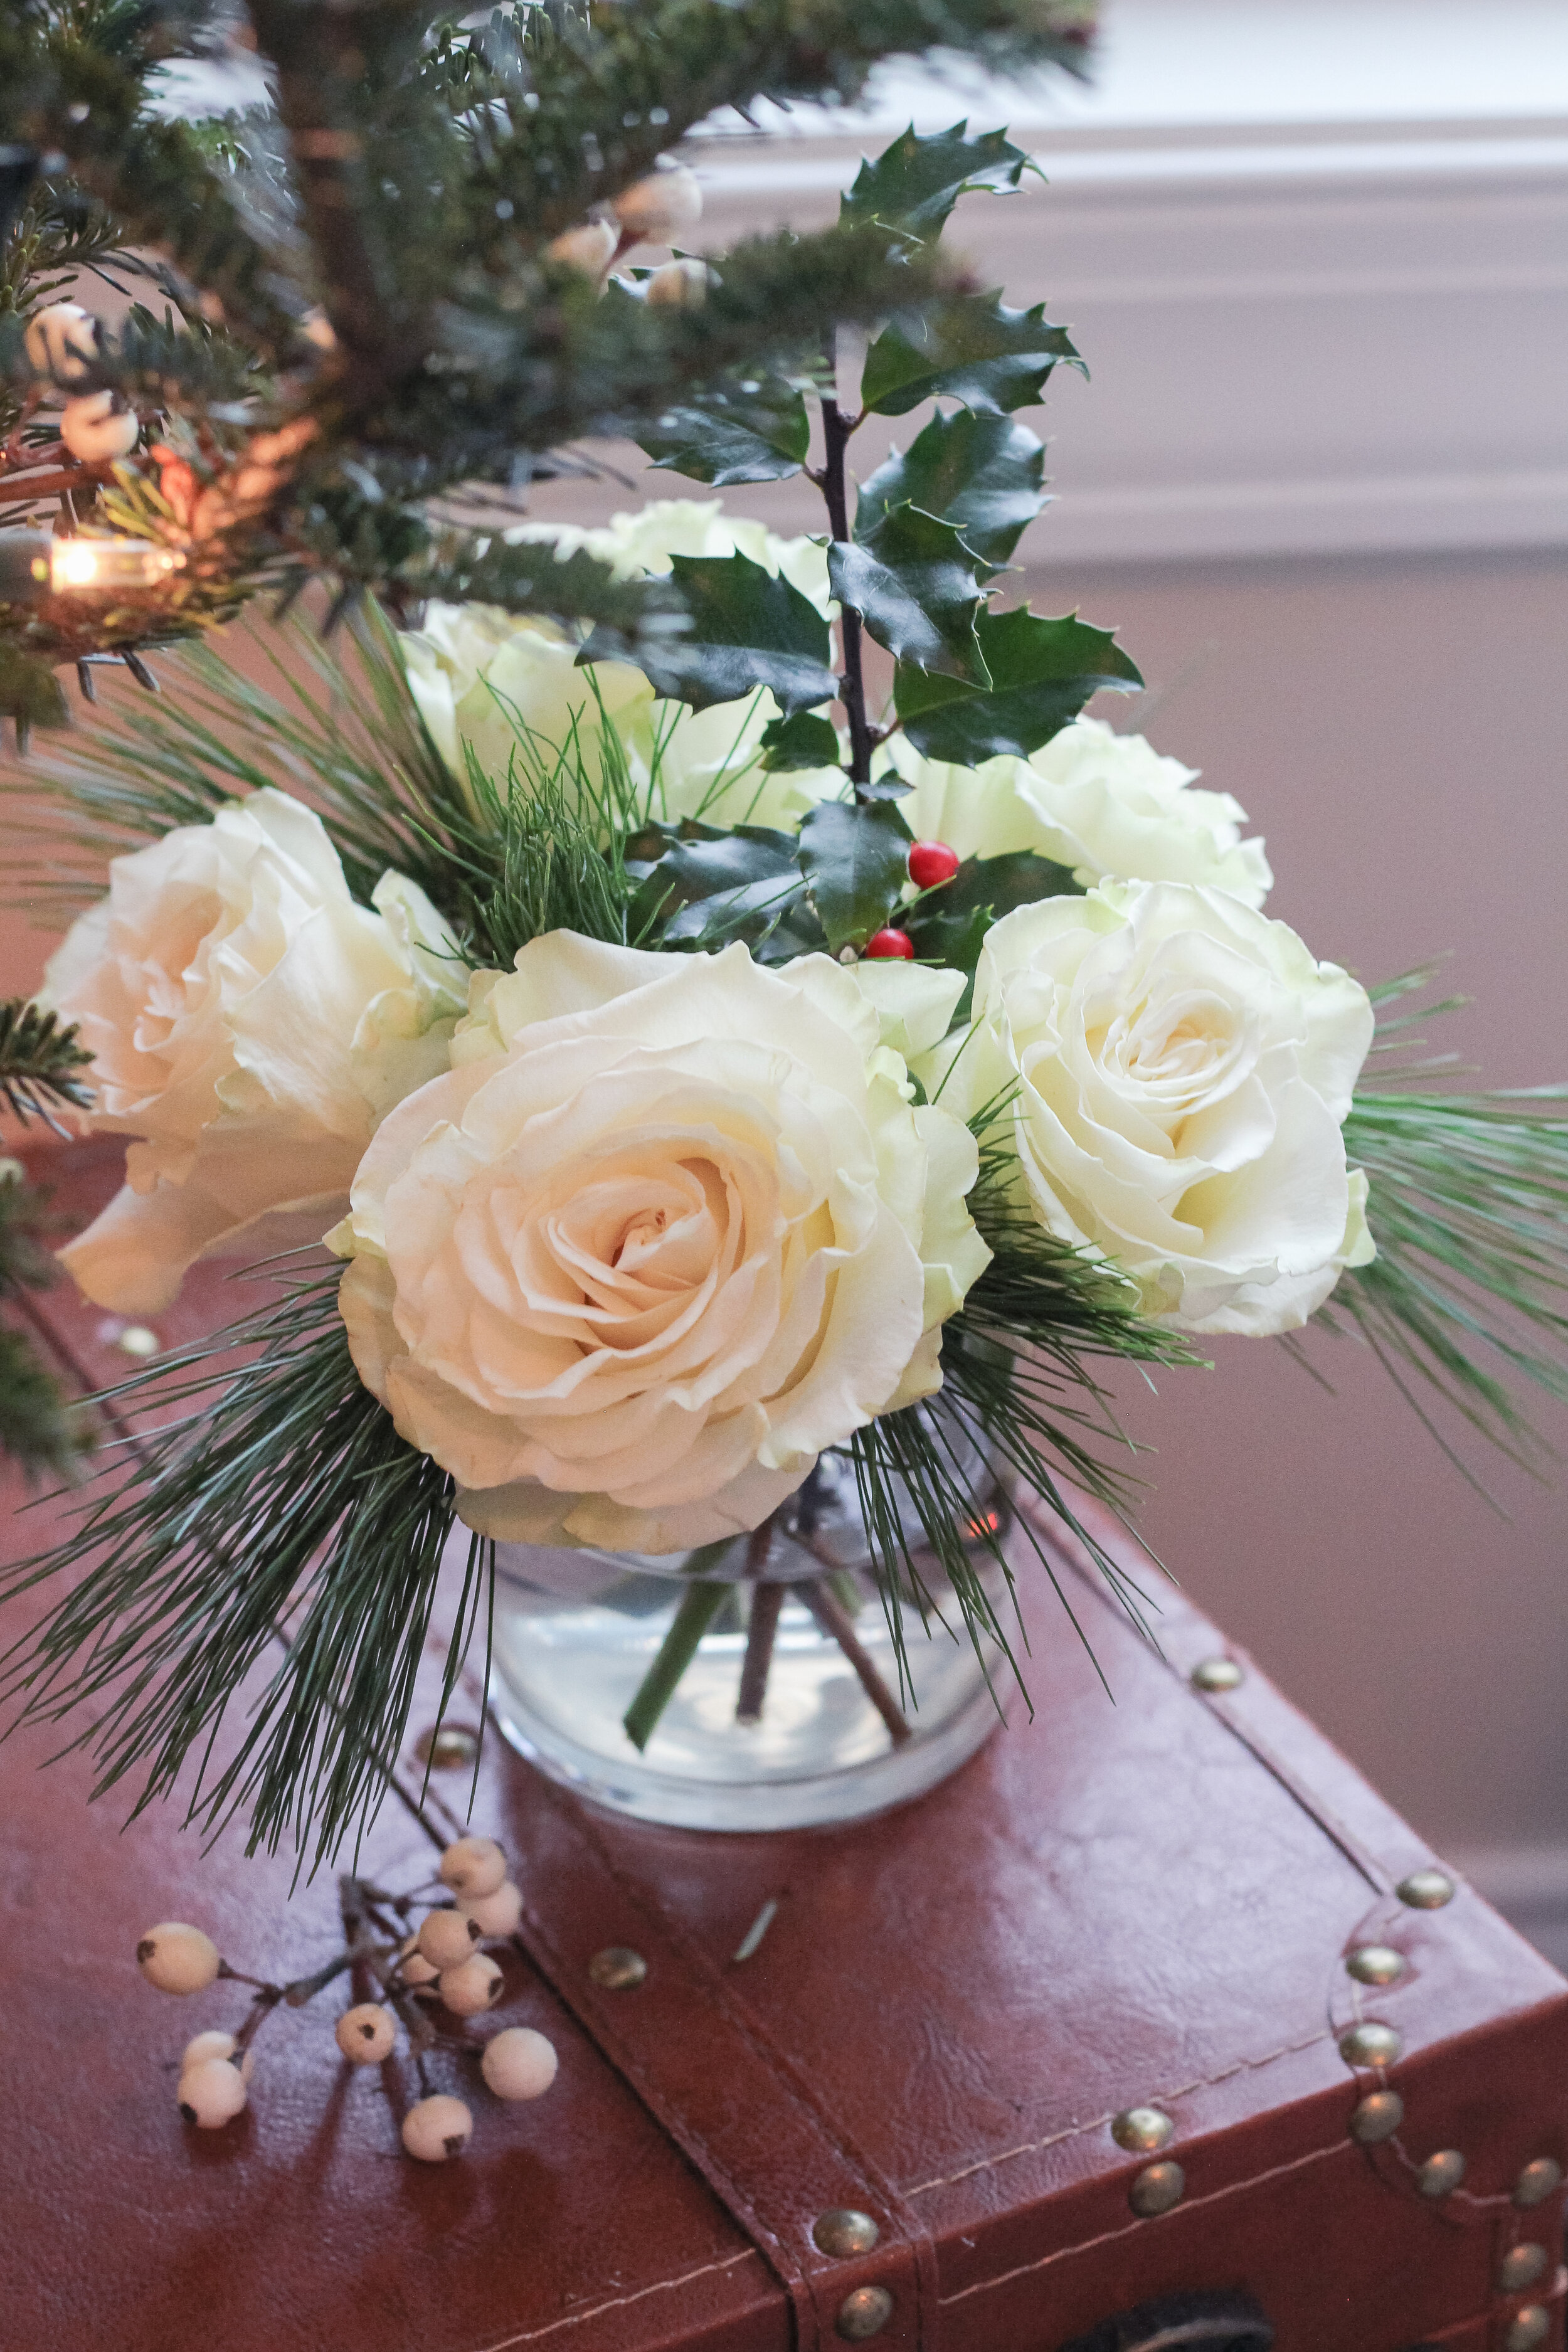 White Roses in Vase with holly and greens